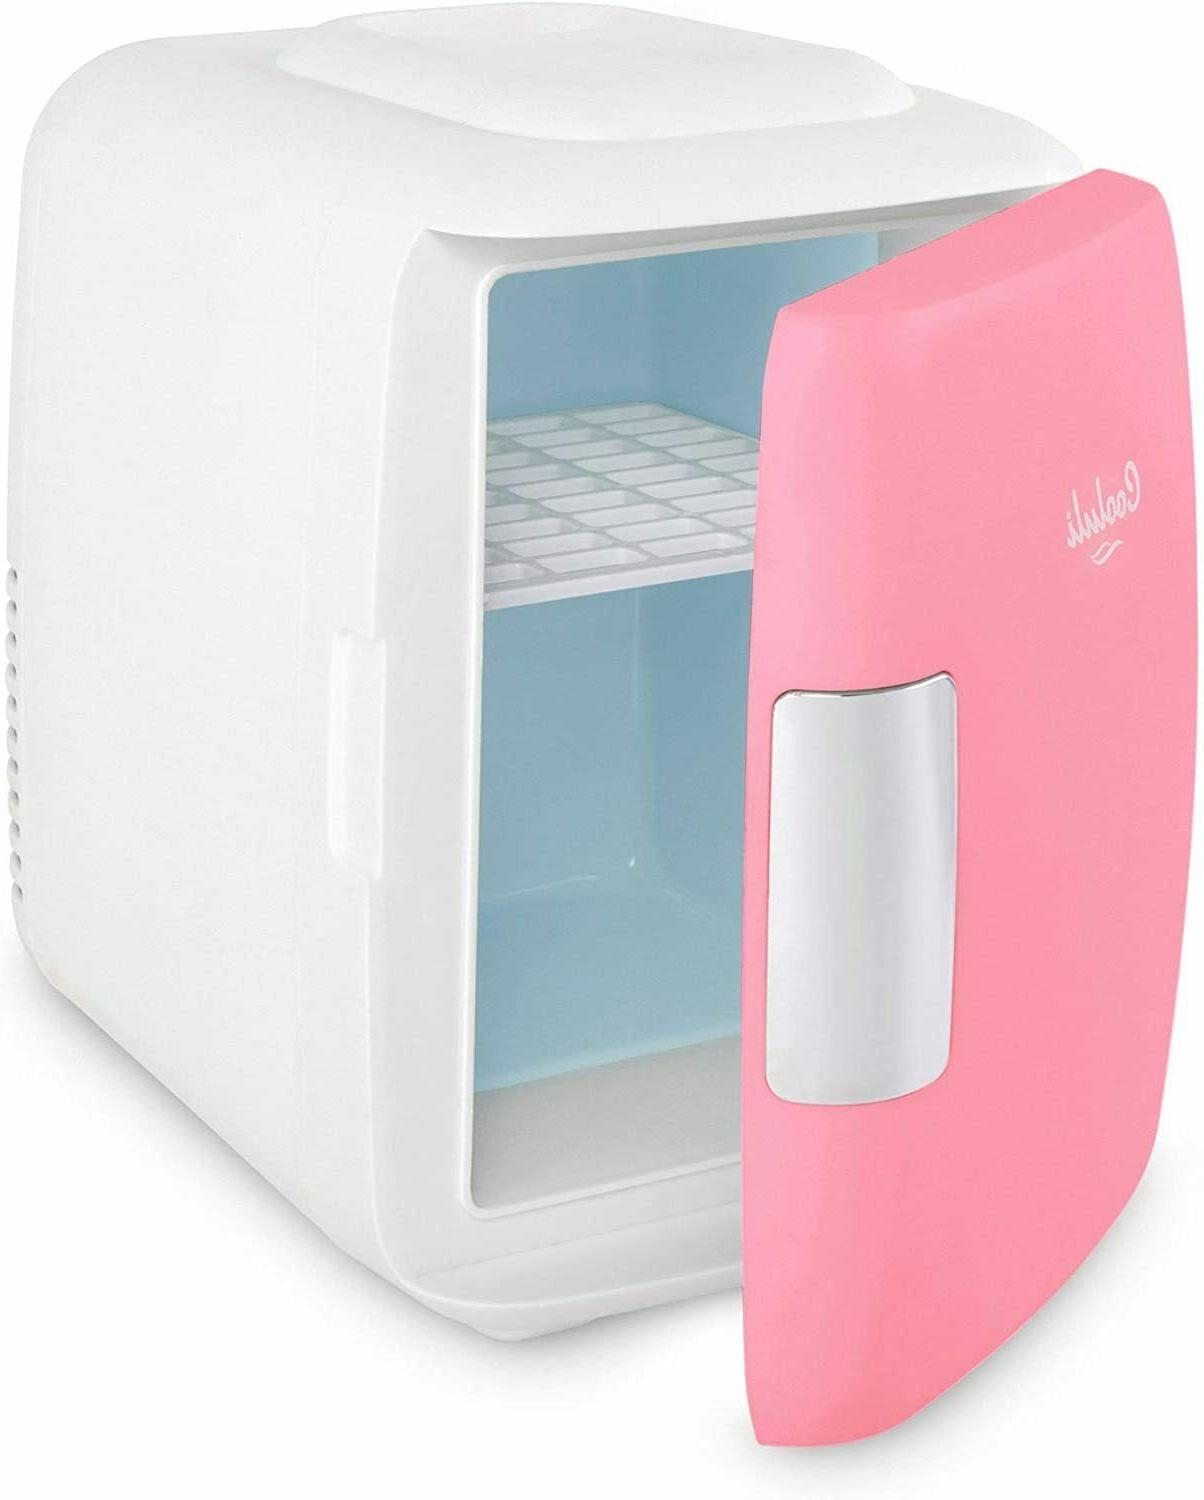 Cooluli Mini cooler and heater